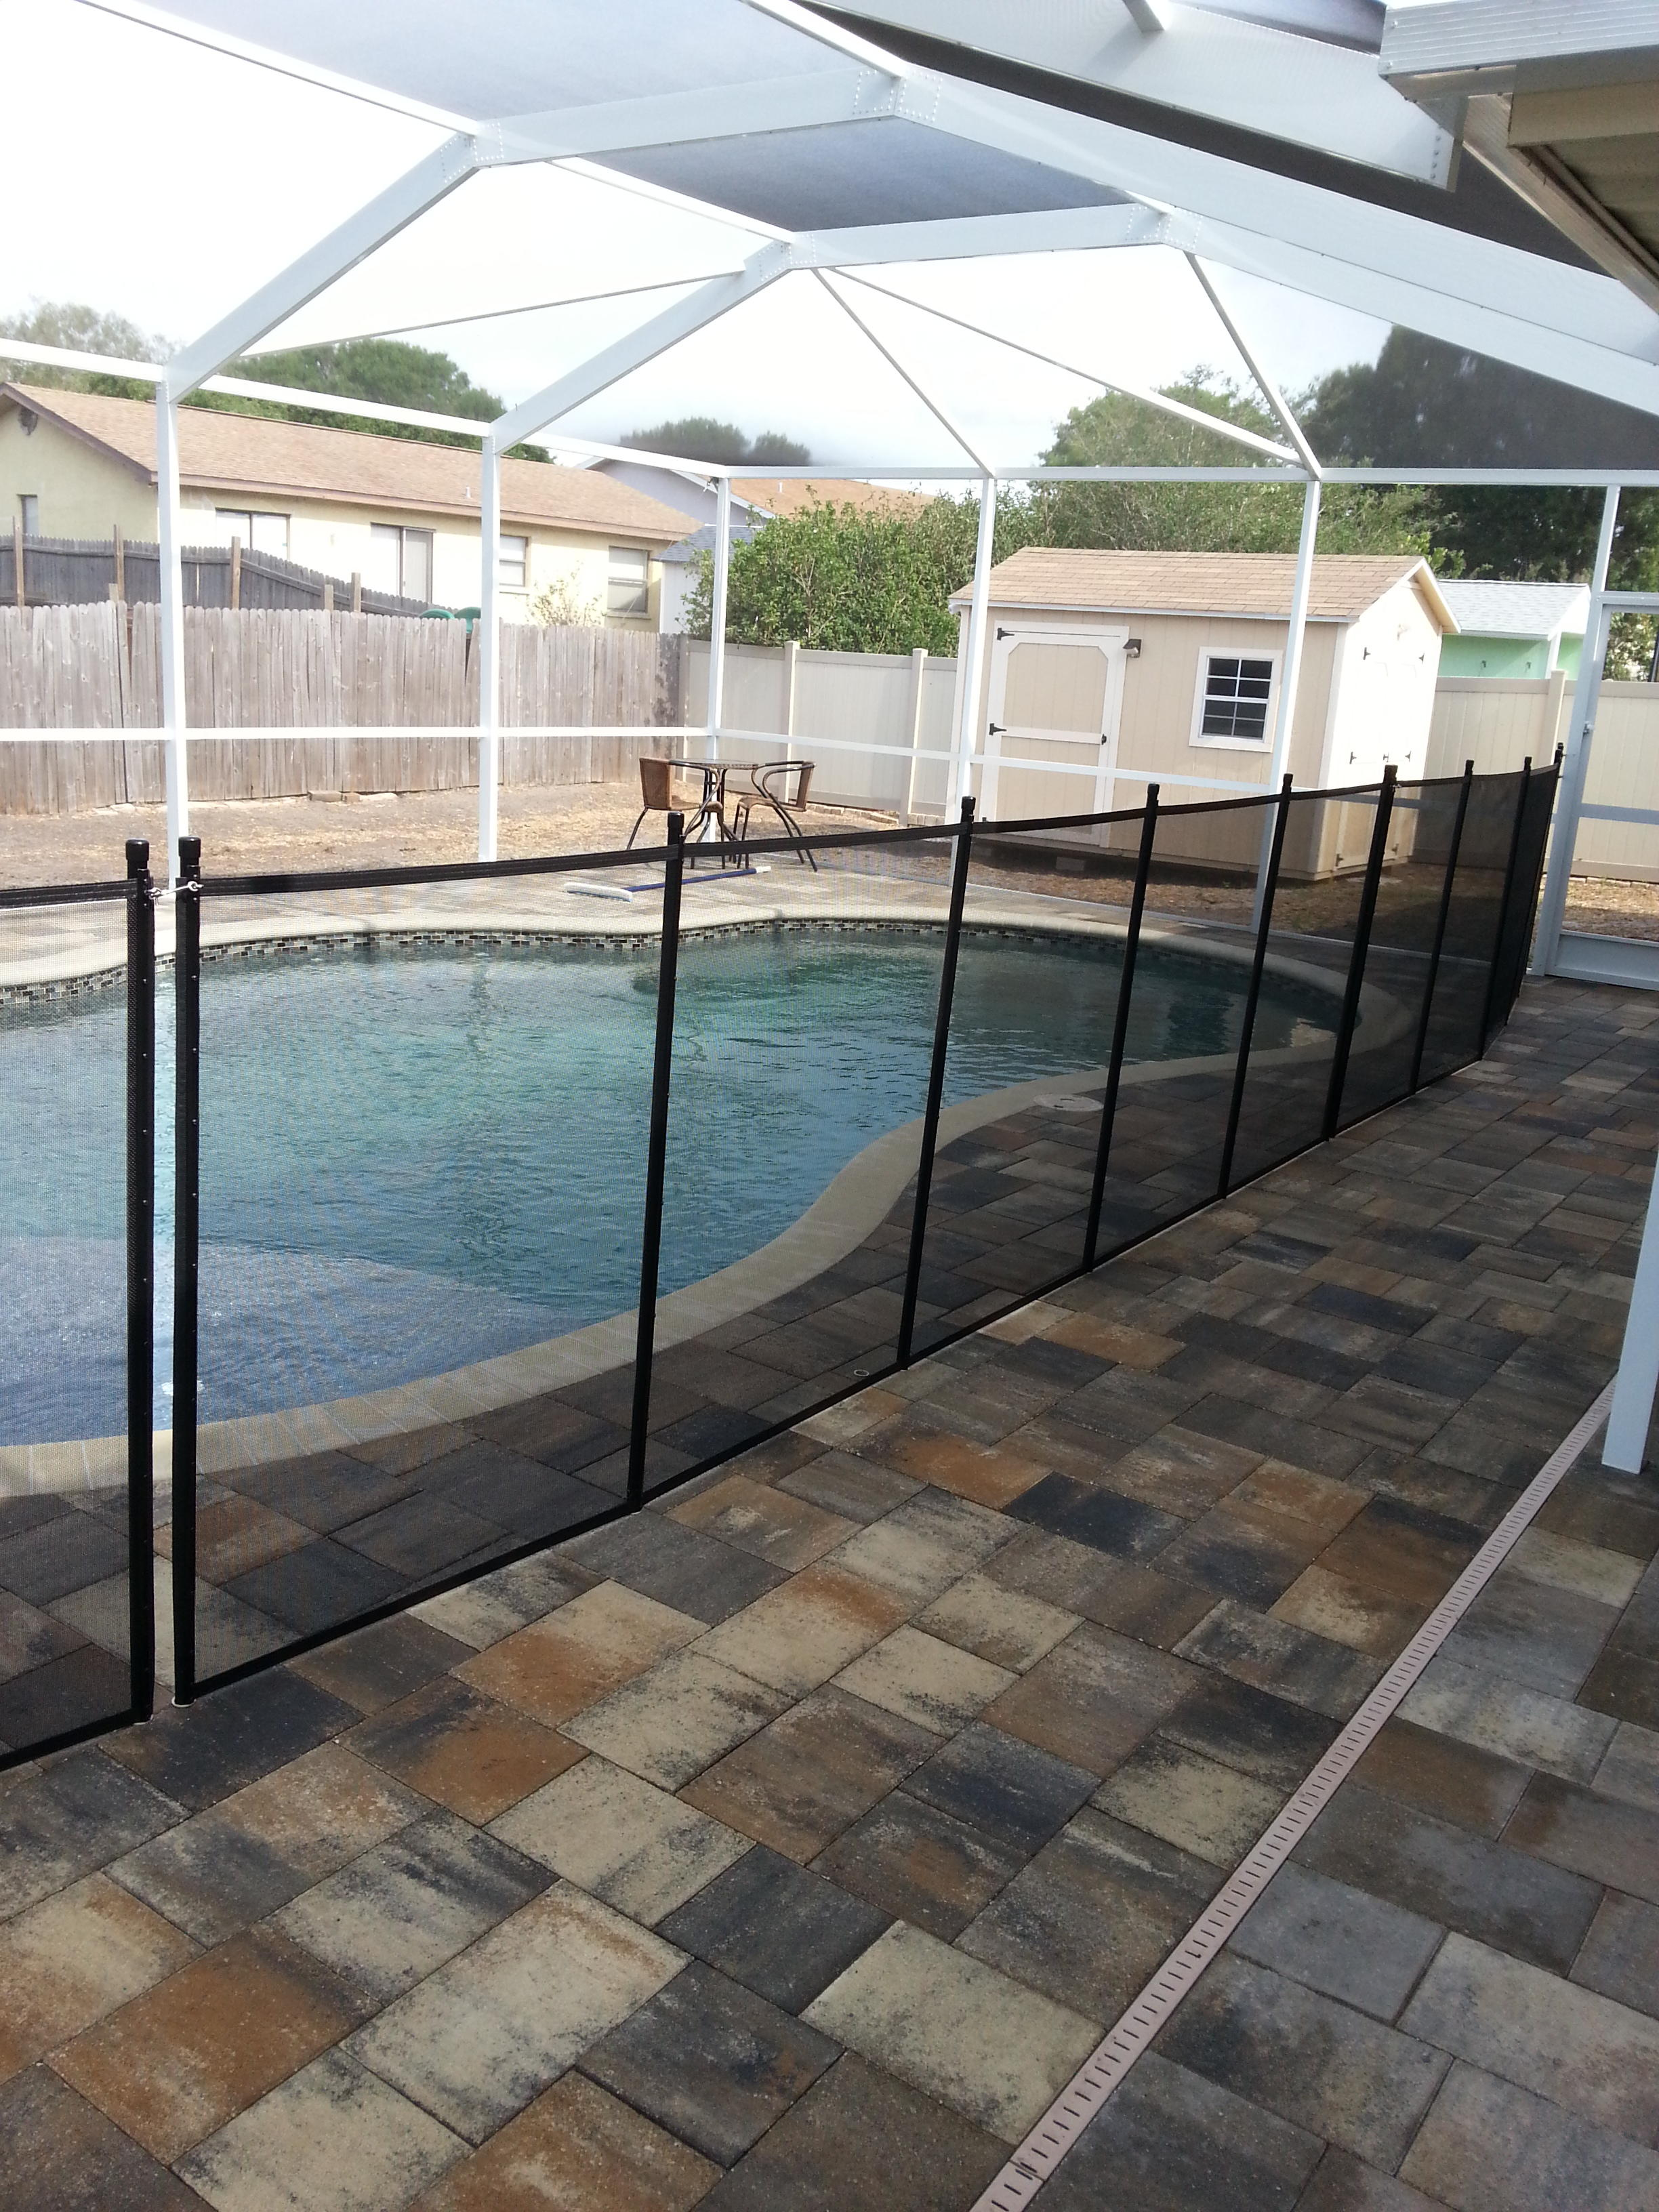 Childcare Pool Fence Systems image 2